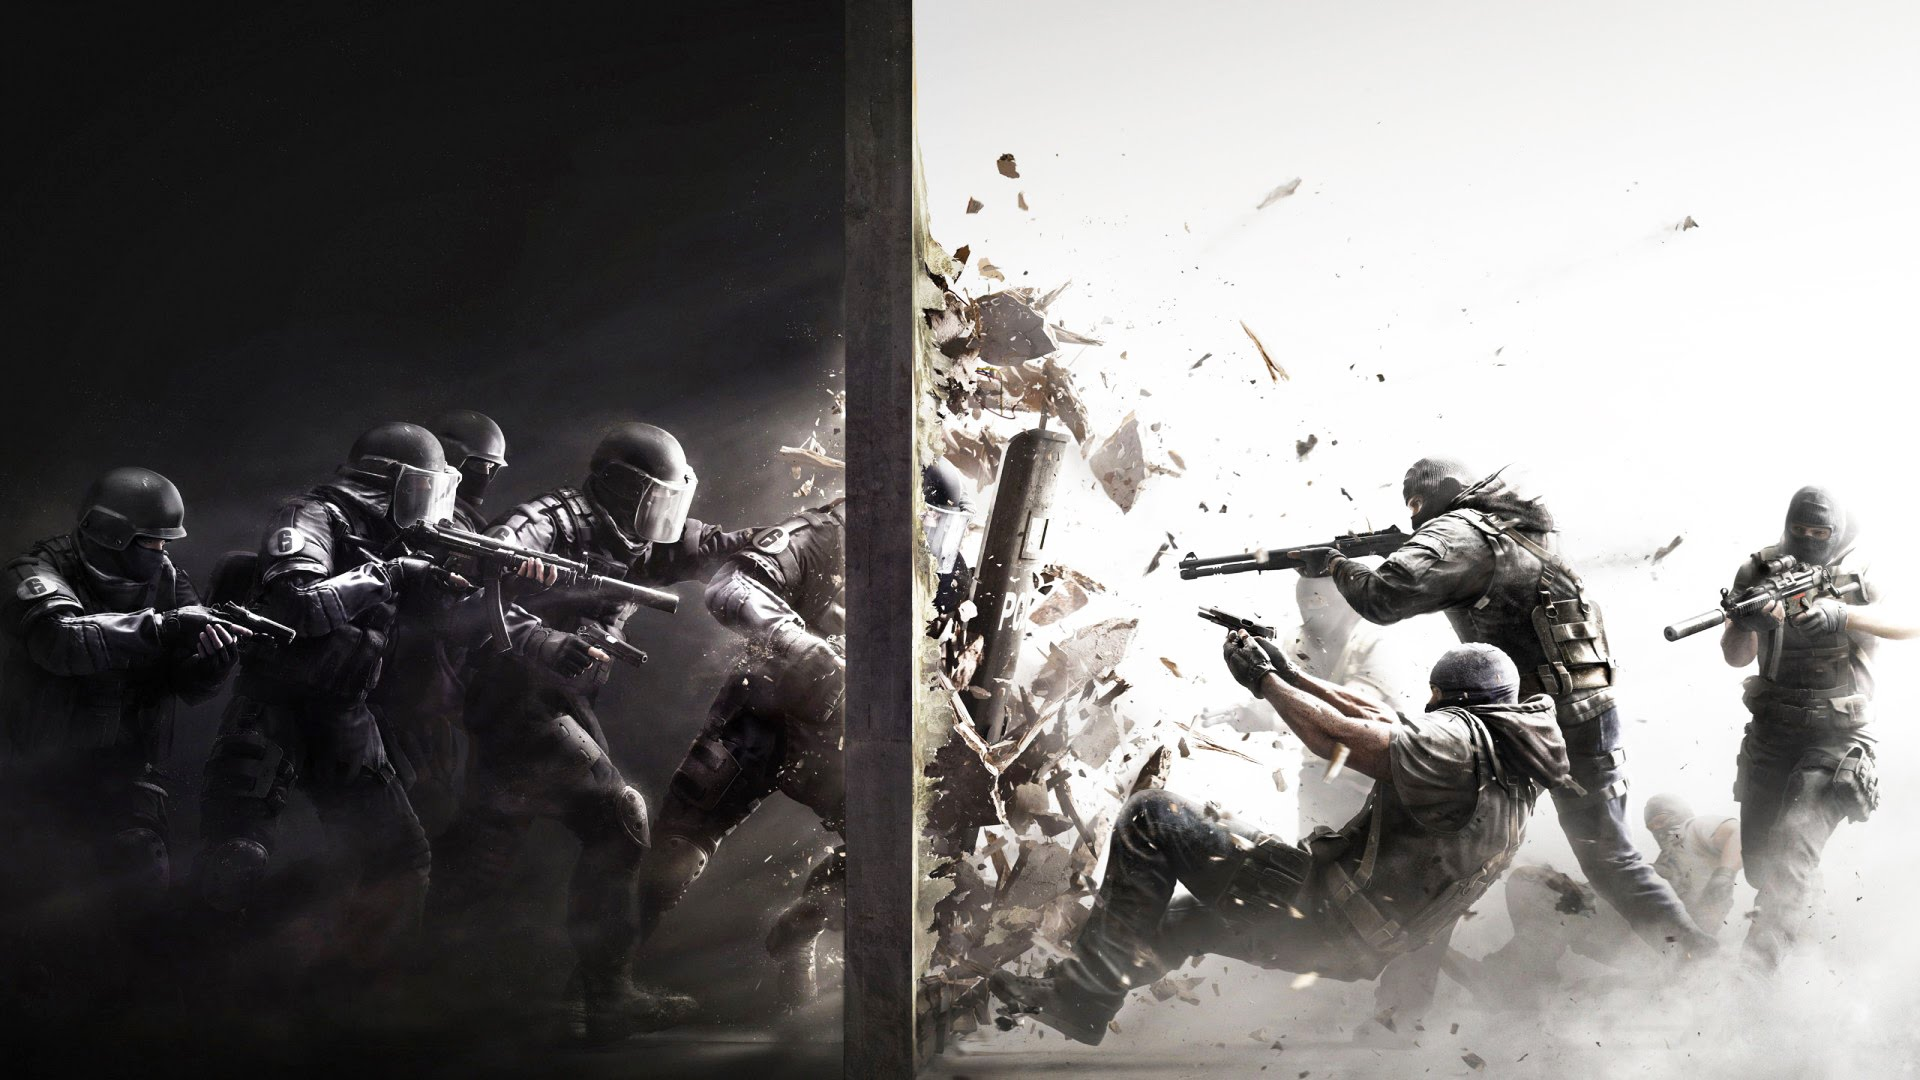 Rainbow 6 siege clipart image royalty free library Rainbow six siege clipart - ClipartFest image royalty free library